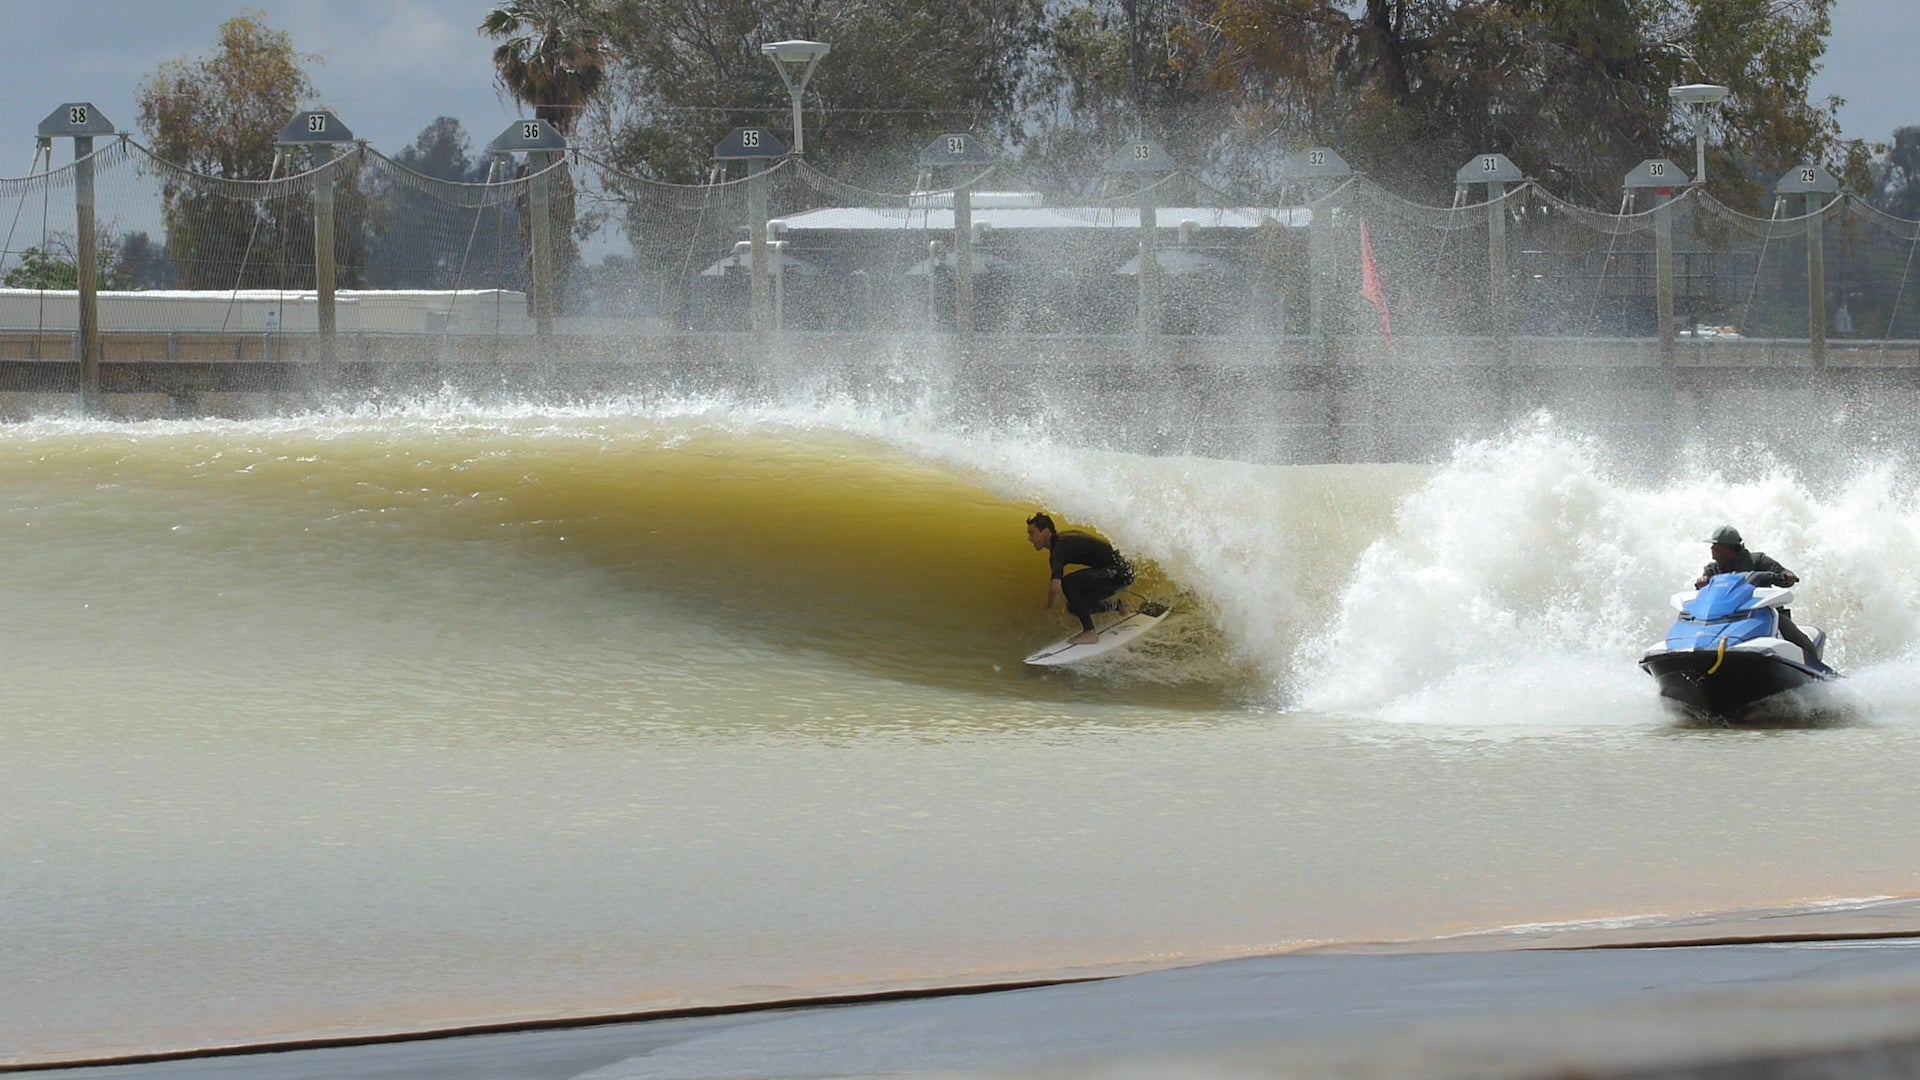 Jame Jenkins on FRK at Kelly Slater Surf Ranch